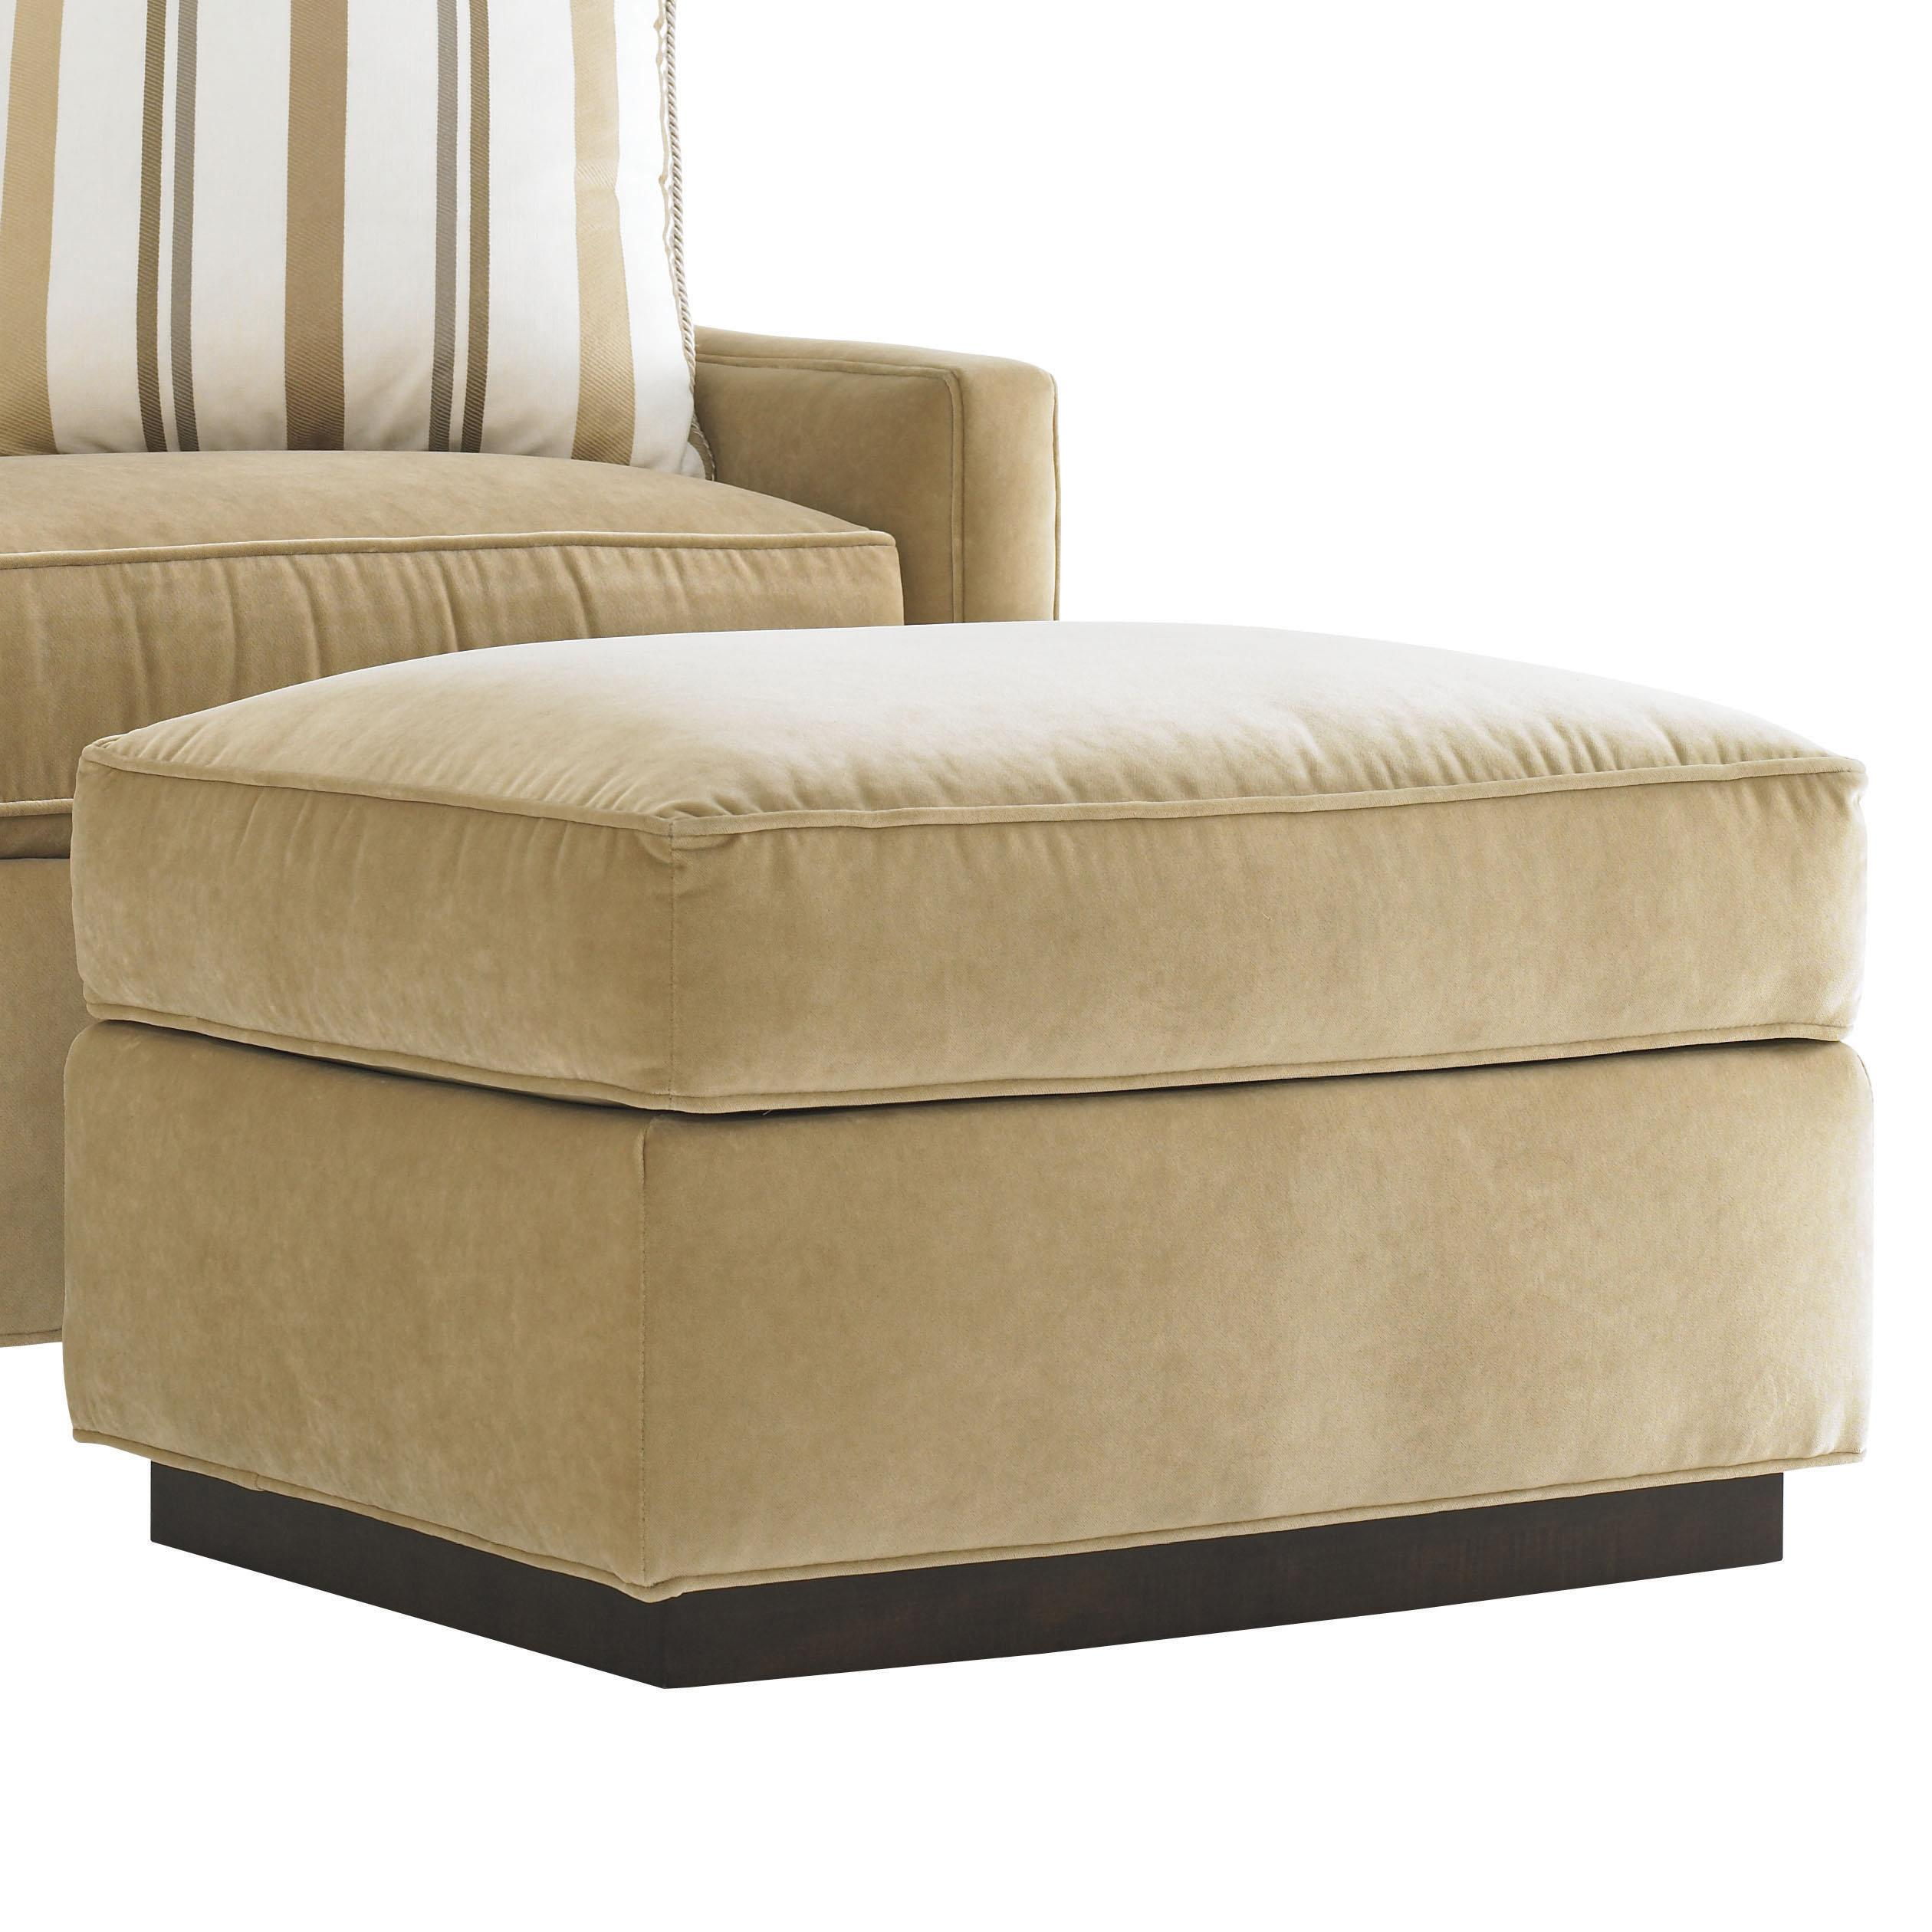 Lexington tower place contemporary bartlett ottoman with exposed wood base reeds furniture Home brands furniture trentham